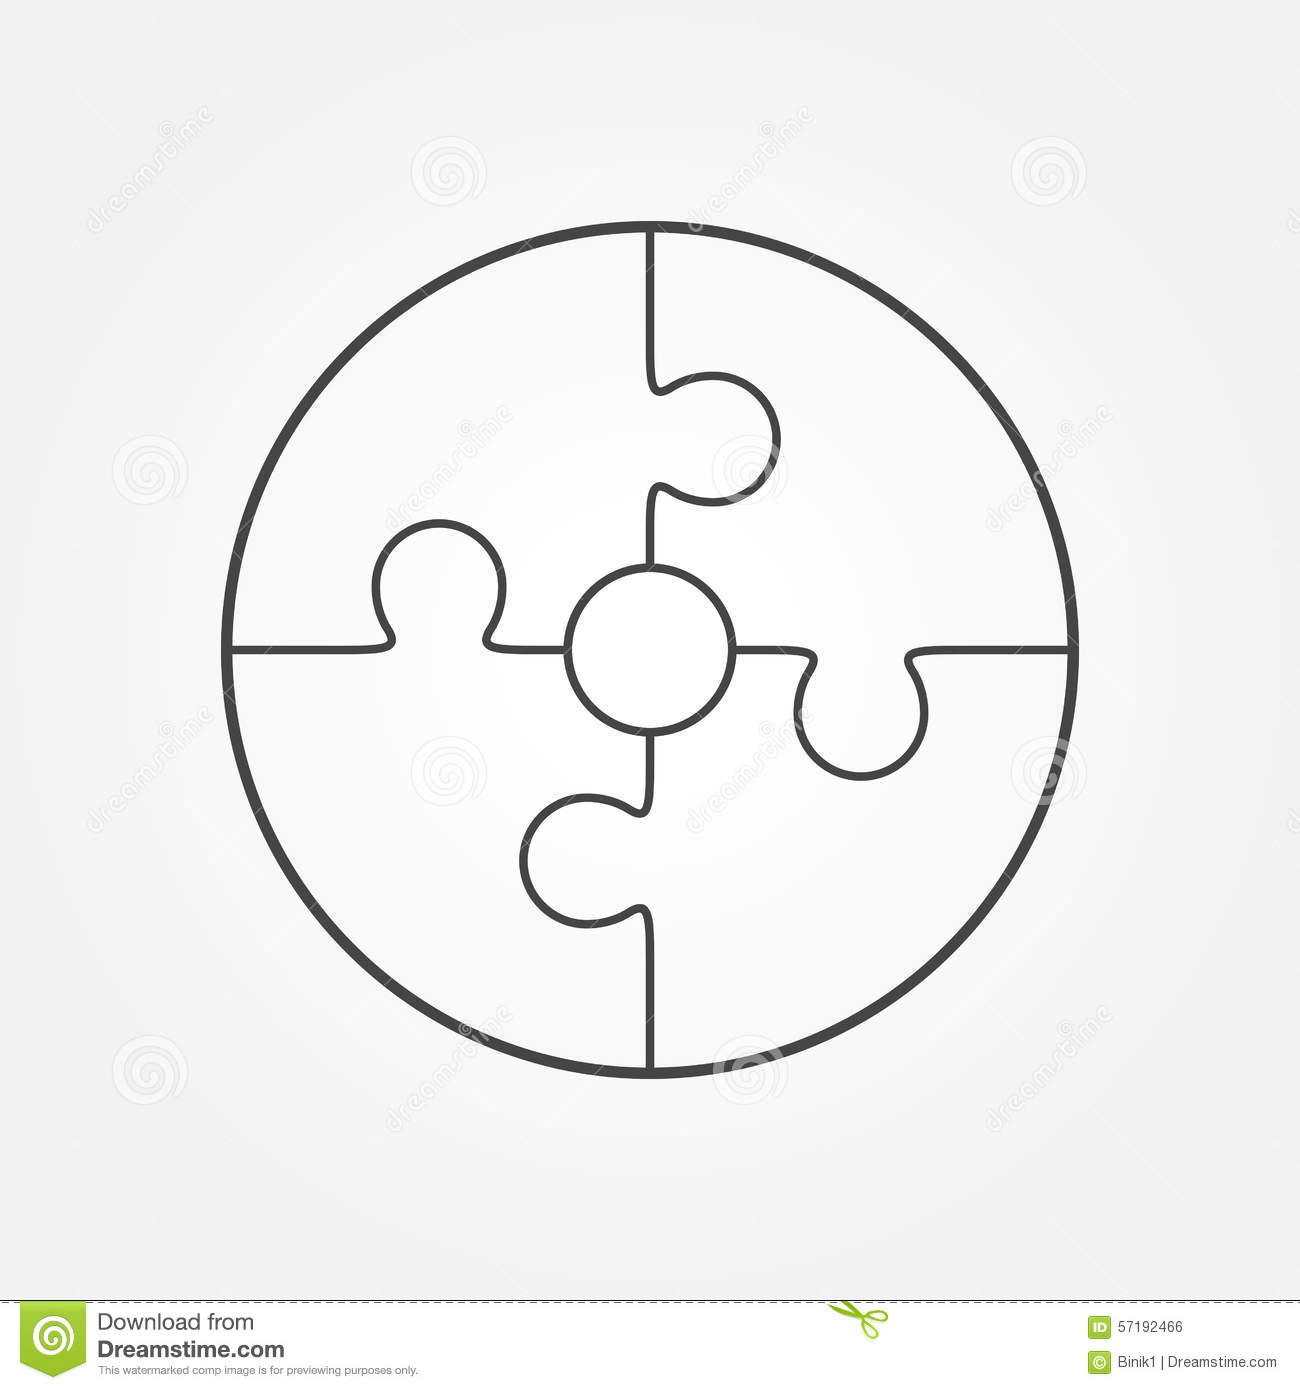 Activities further 360 C aign besides Stock Illustration Jigsaw Puzzle Form Circle Consists Four Parts Vector Illustration Image57192466 furthermore Beyondtalk blogspot together with Shapes Math Game. on strategy template